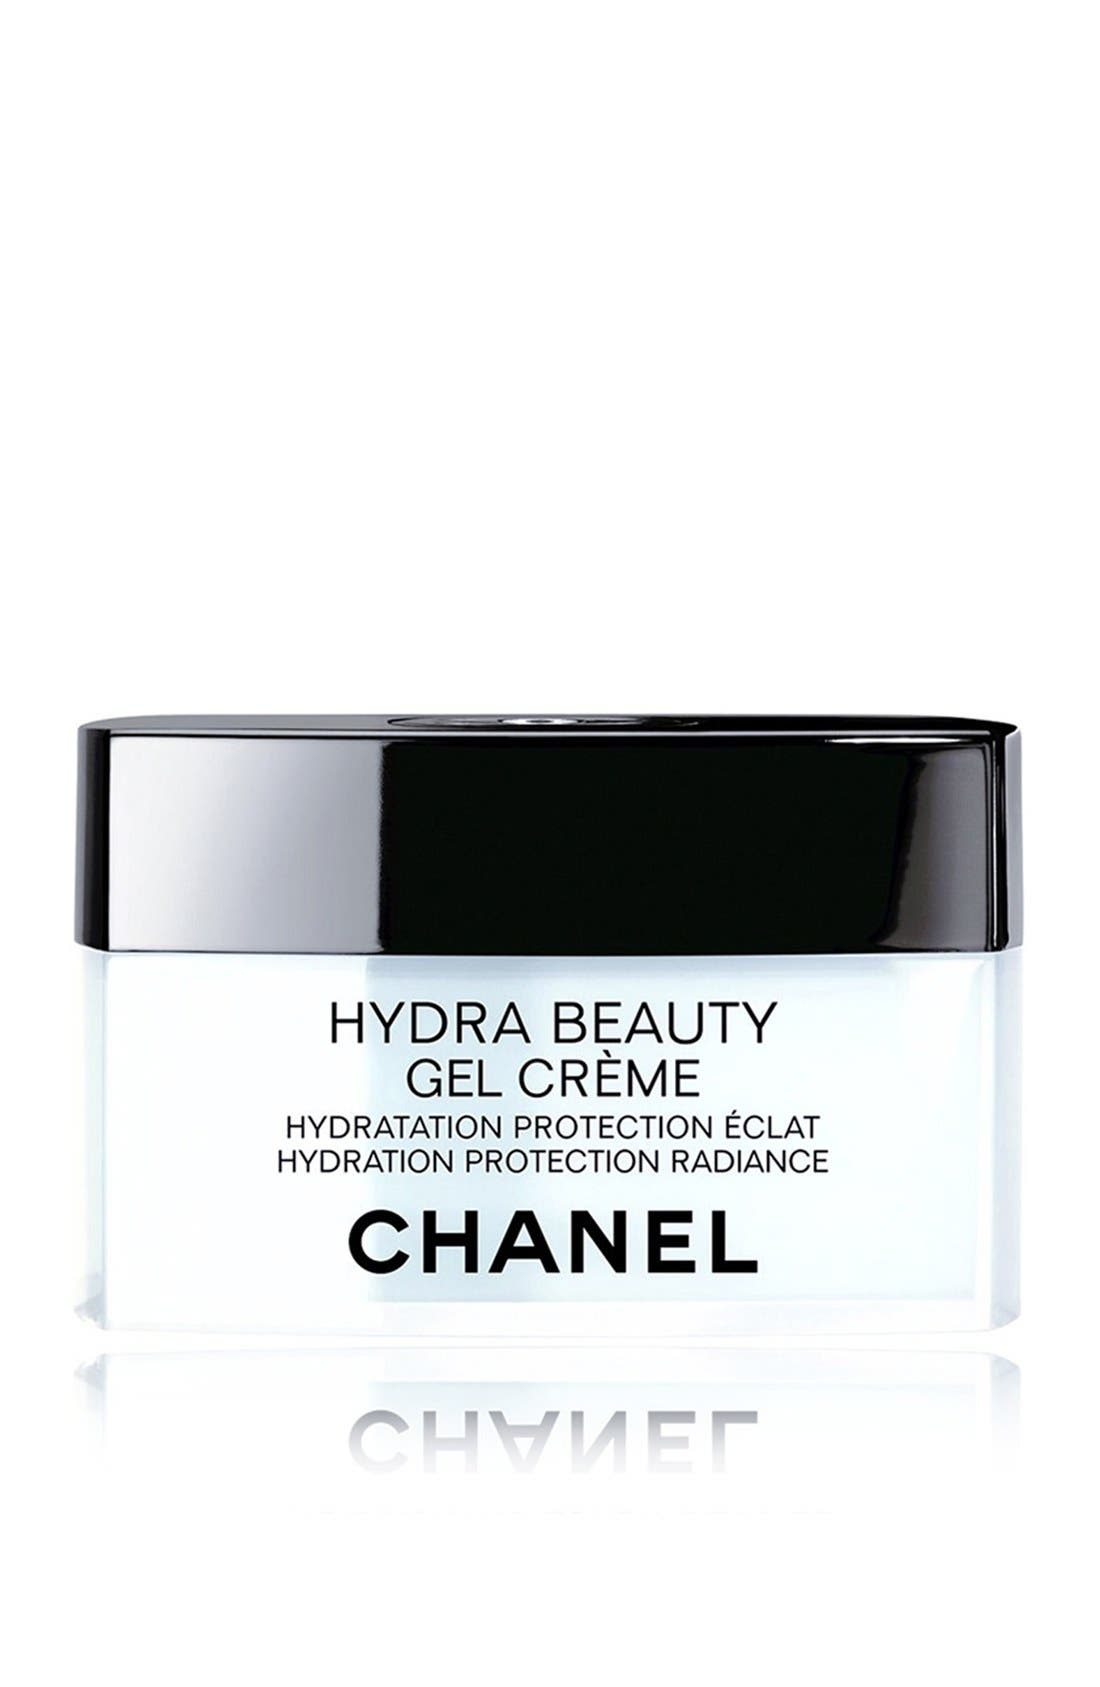 CHANEL HYDRA BEAUTY GEL CRÈME 